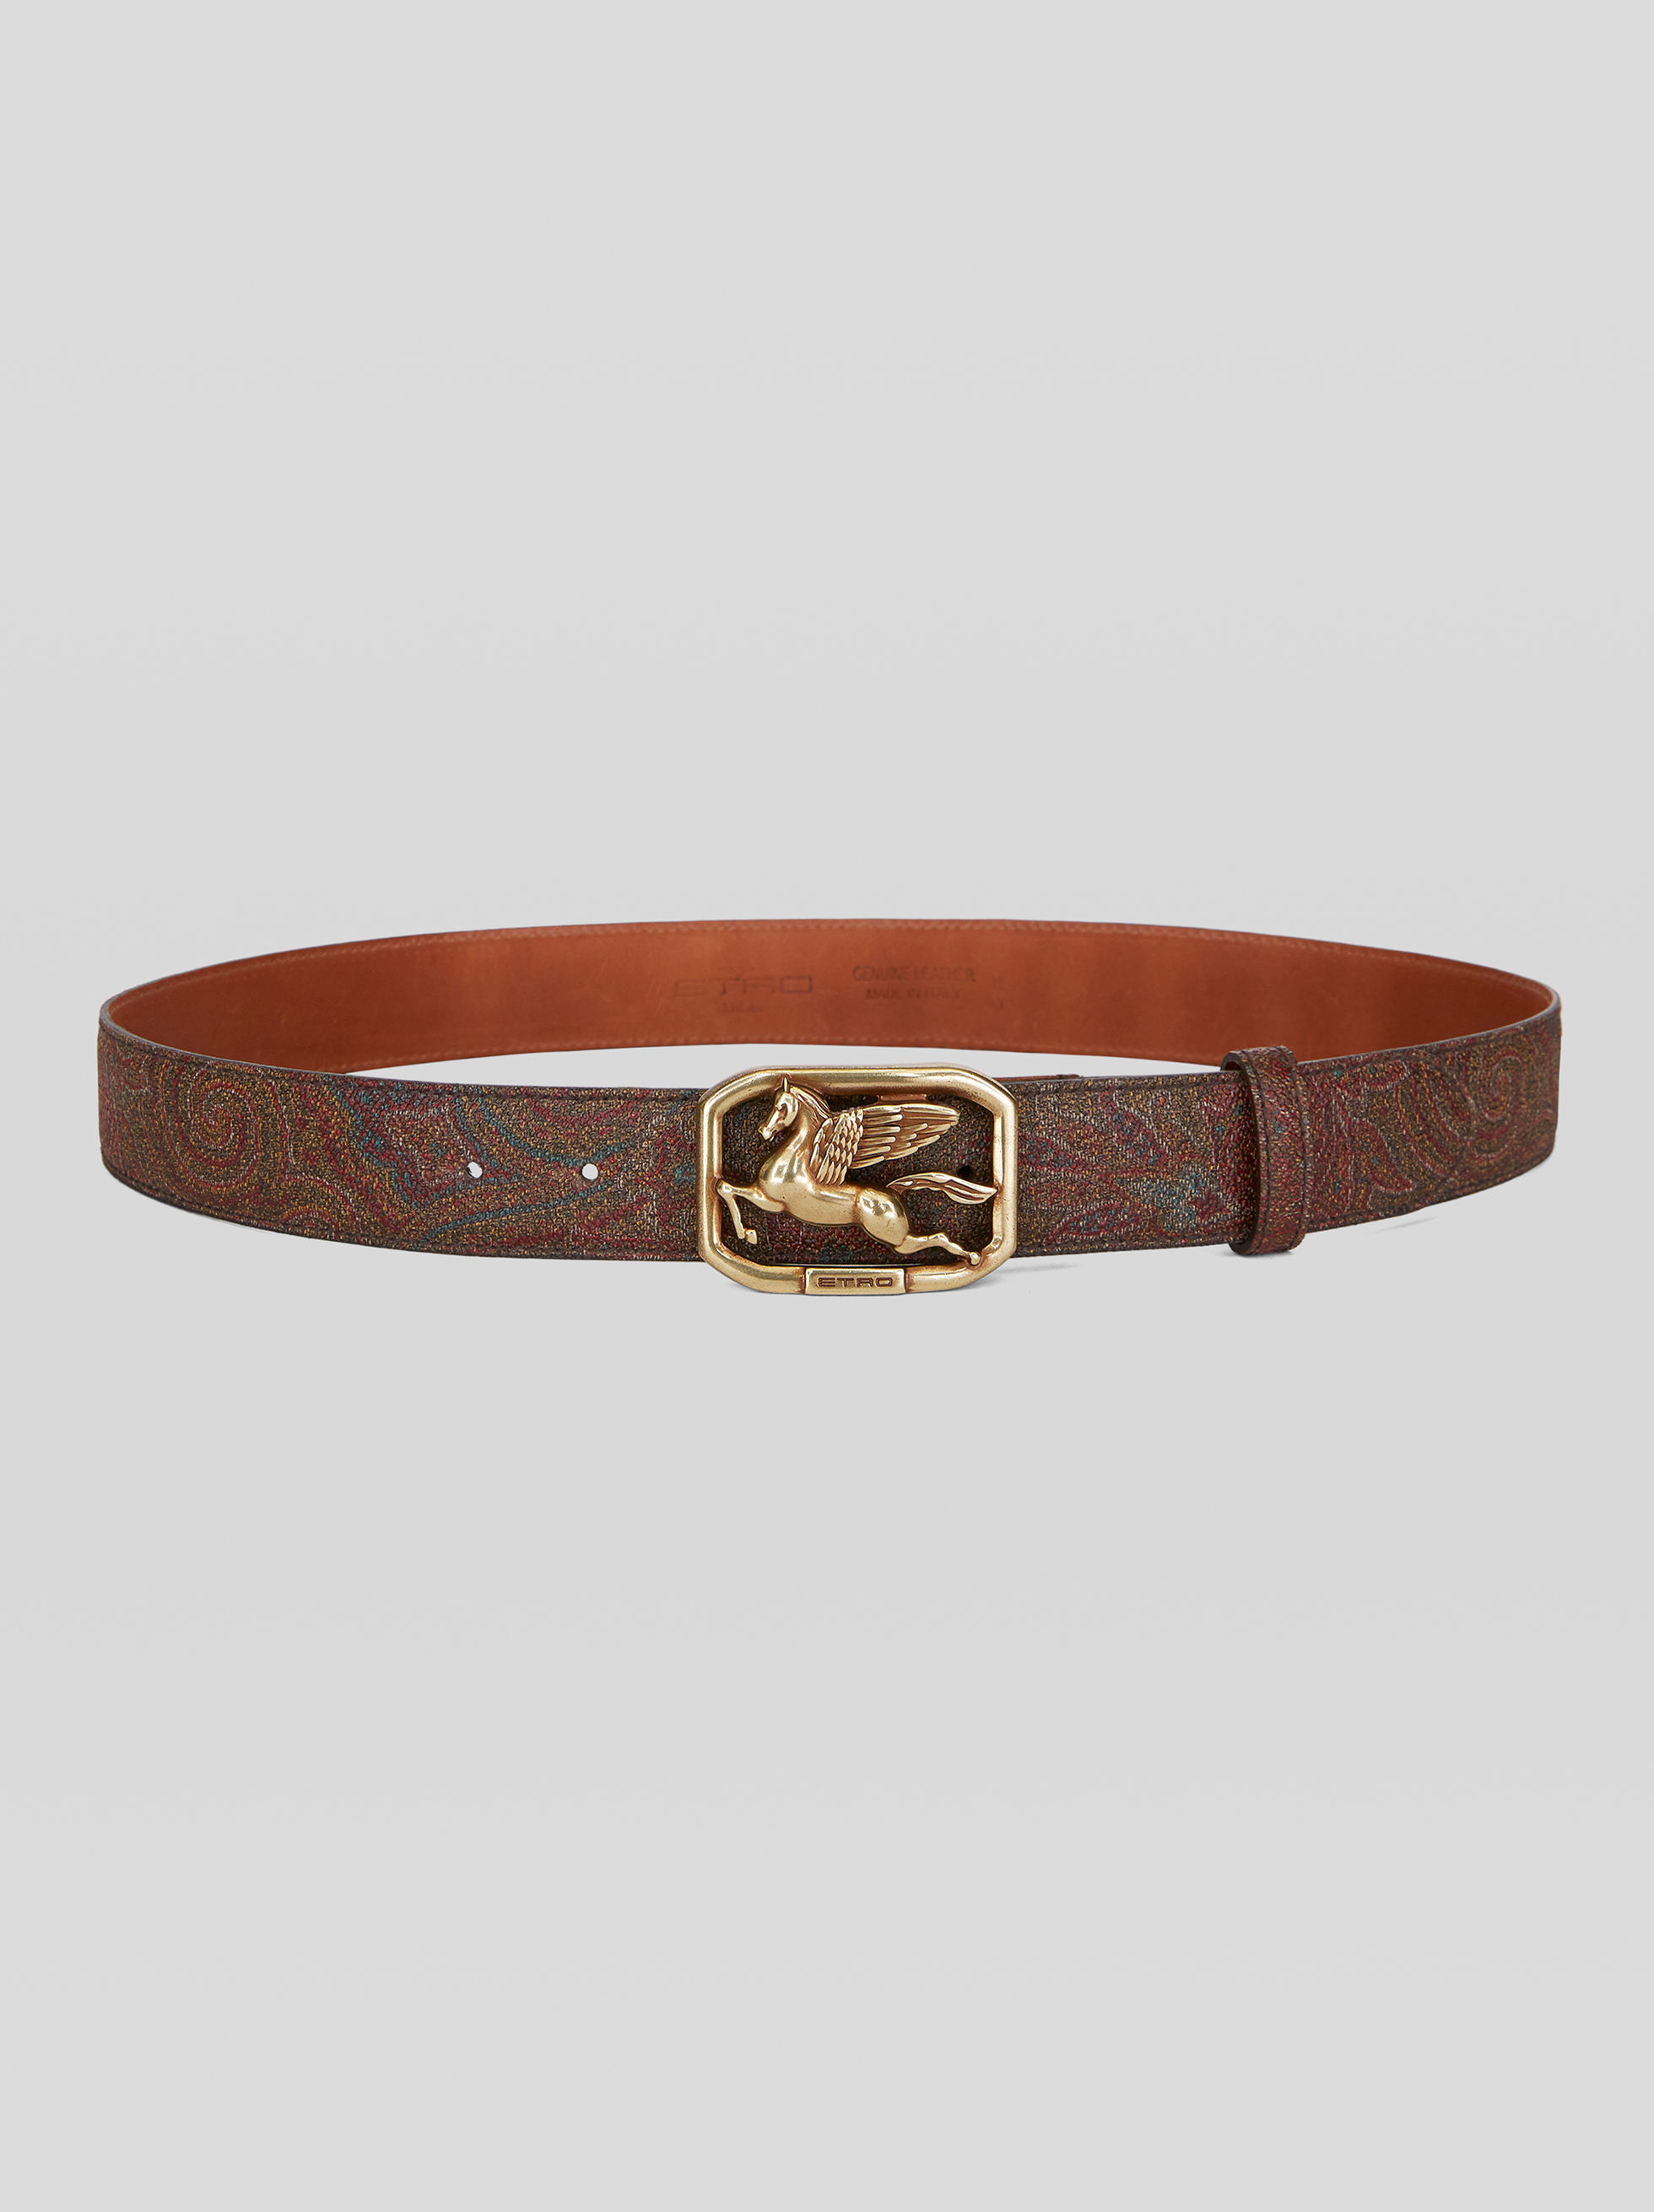 BELT WITH PEGASO BUCKLE